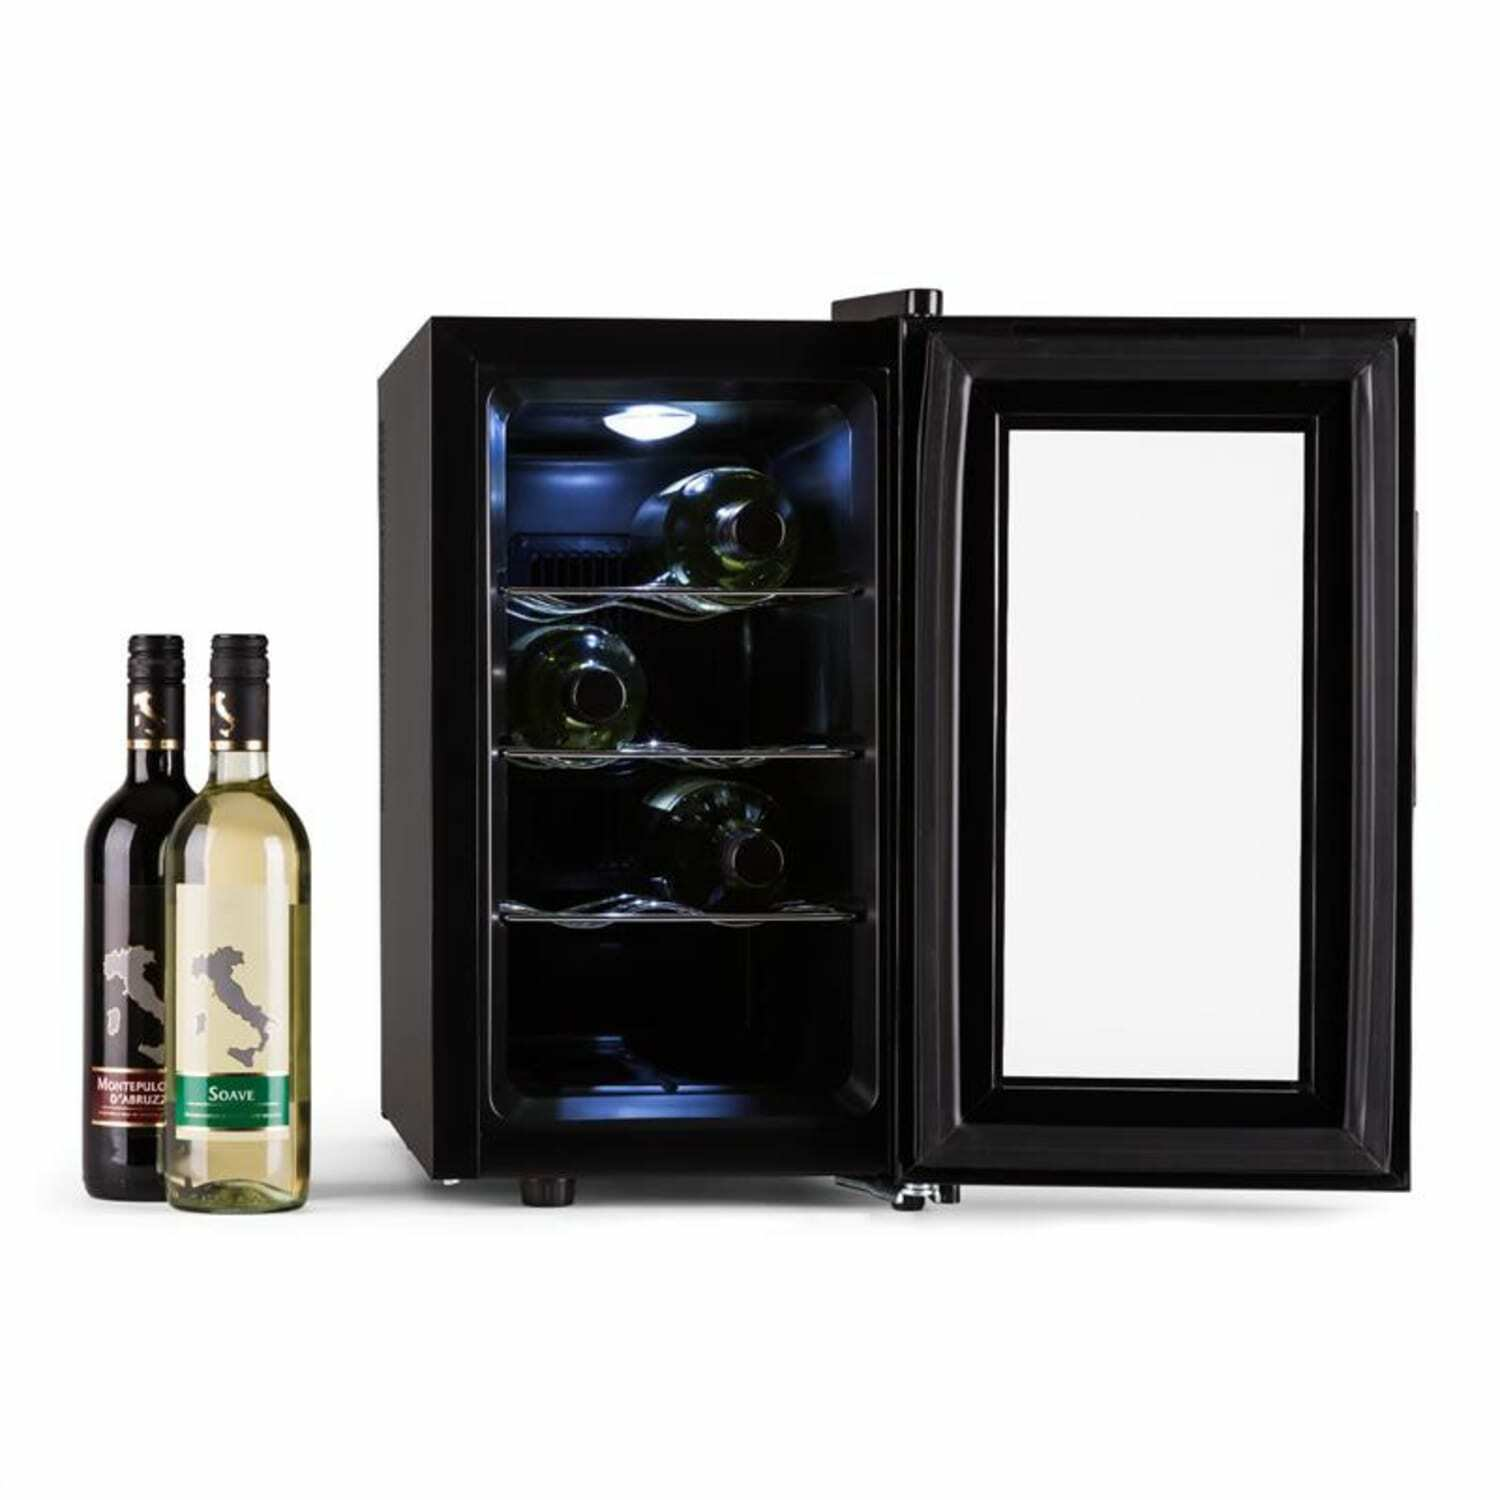 cantinetta frigo vino enoteca cantina portabottiglie 3. Black Bedroom Furniture Sets. Home Design Ideas